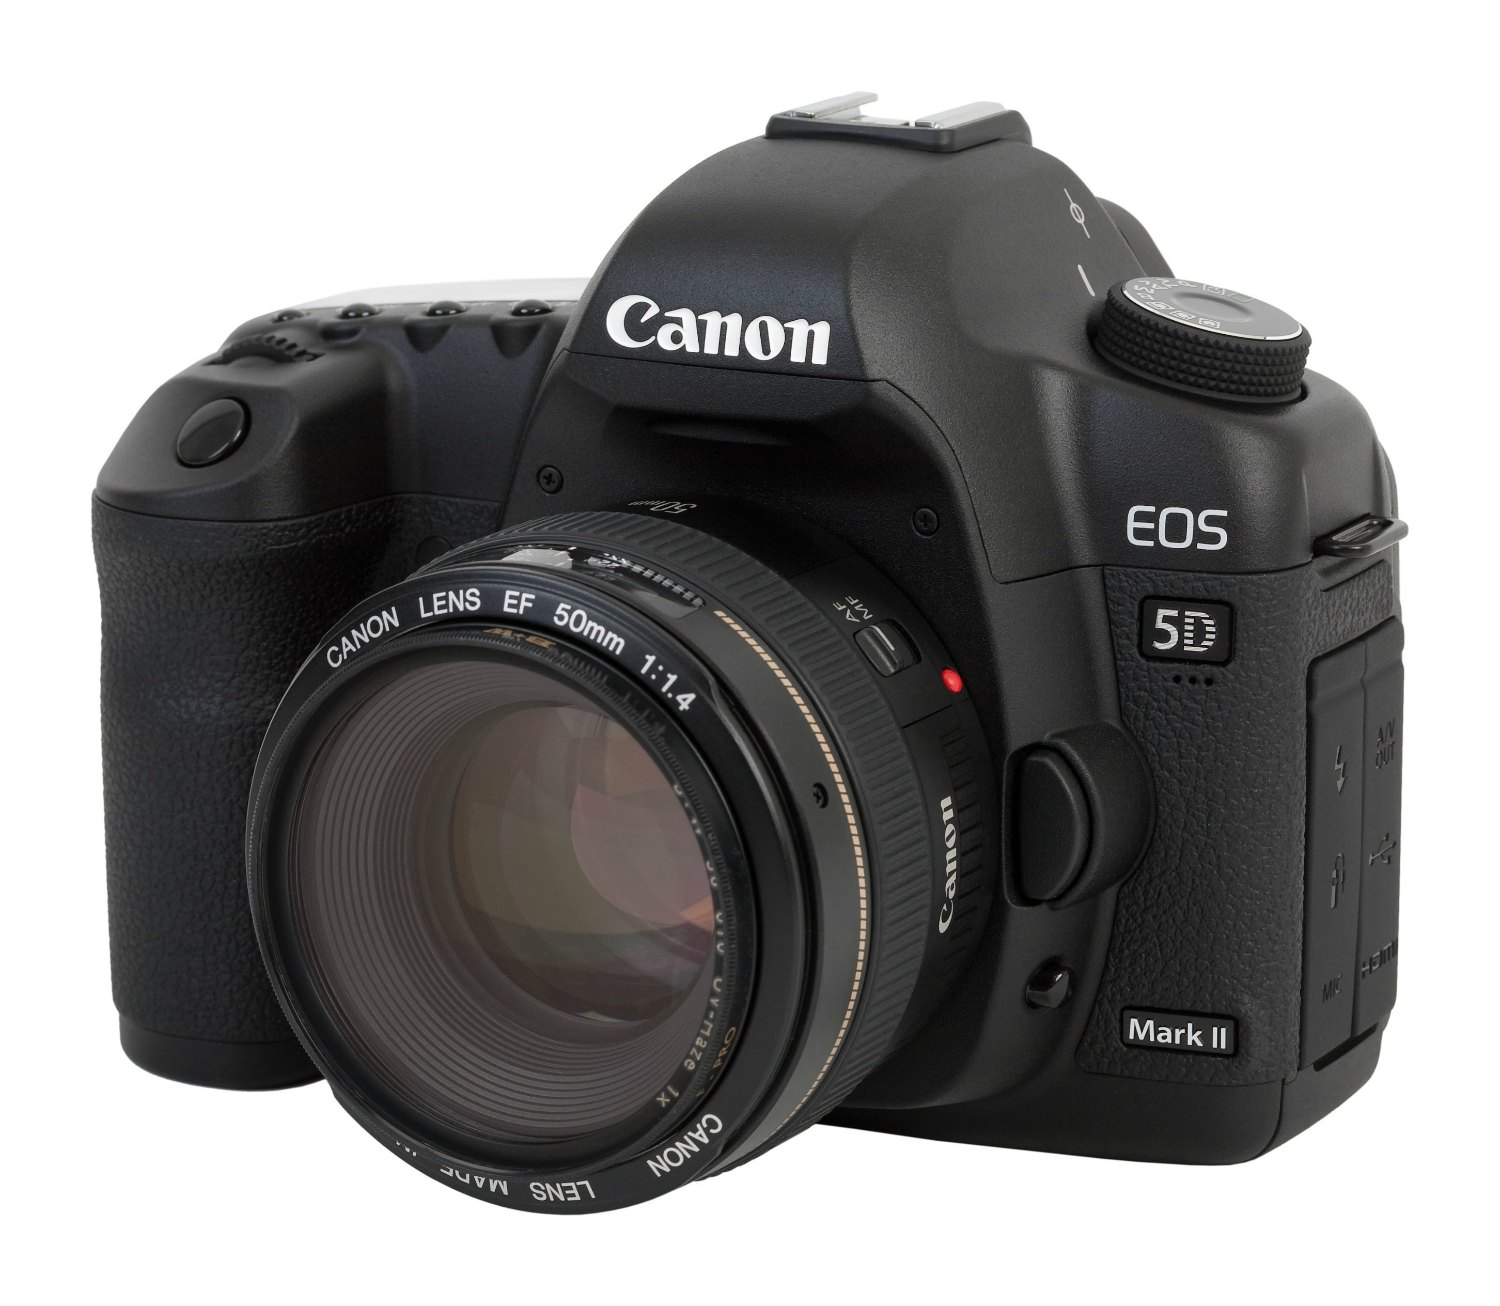 This Canon 5D mark ii is on my blogger's wish list